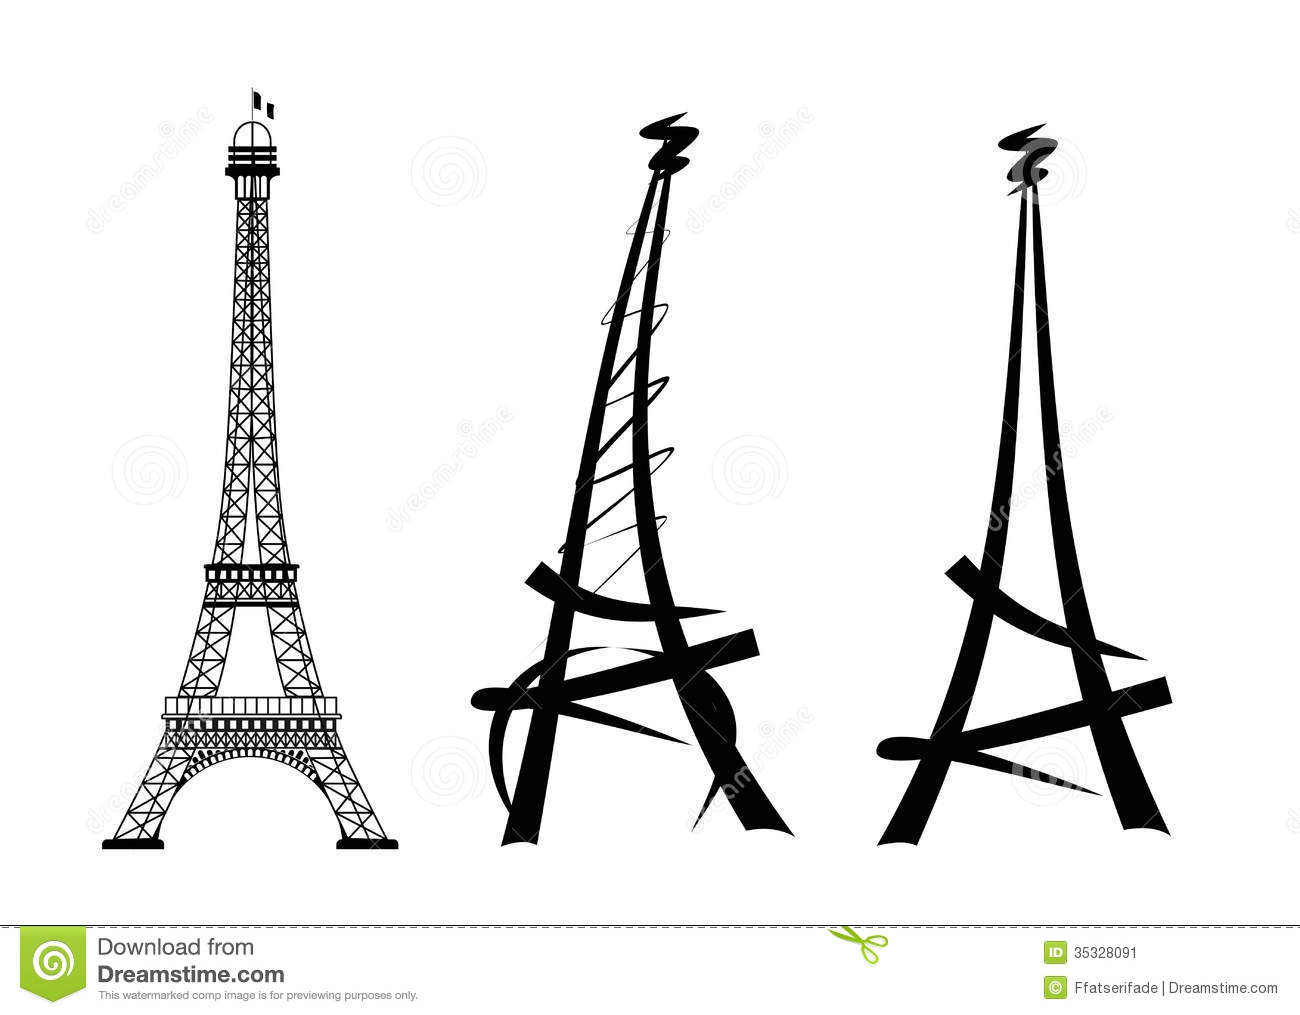 France Image  C3 A0 Colorier Tour Eiffel Cliparts Gratuits 6610 also Stock Illustration Eiffel Tower Abstract Sketch Illustration Image57964821 also 178195845 moreover Stock Illustration Hello Paris Fashion Girl Near likewise 12582745. on eiffel tower silhouette